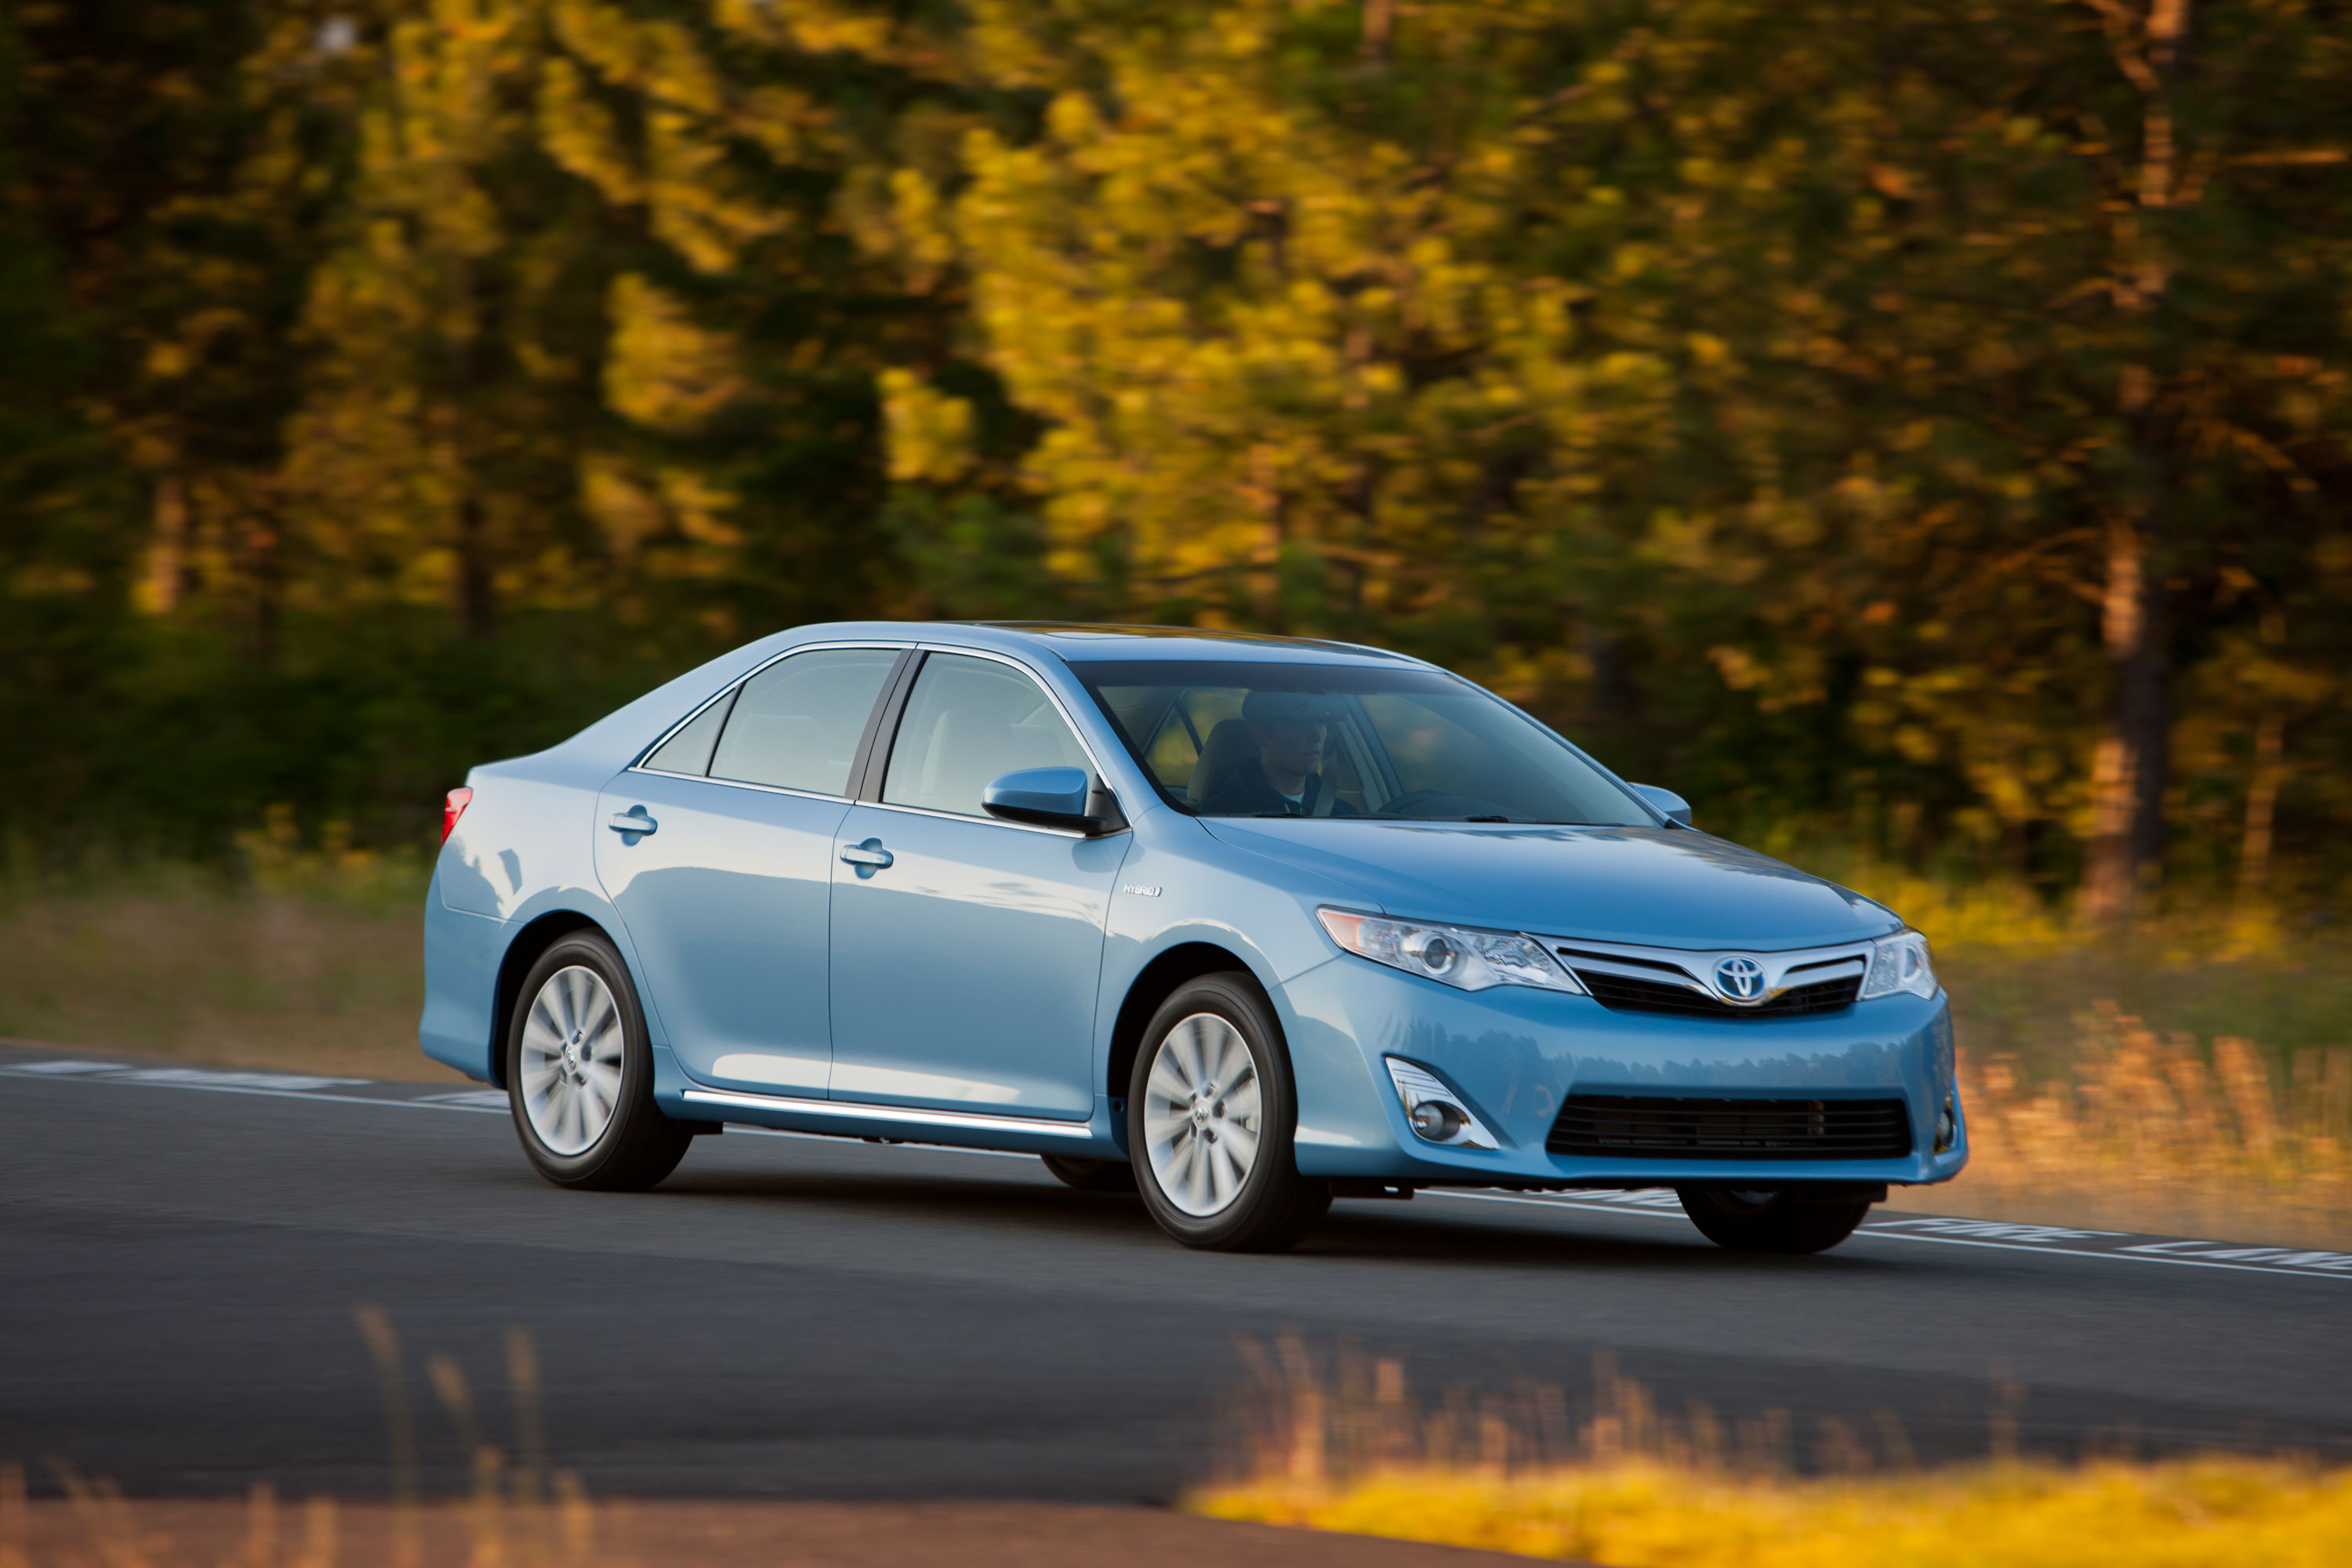 2014 toyota camry review best car site for women vroomgirls. Black Bedroom Furniture Sets. Home Design Ideas